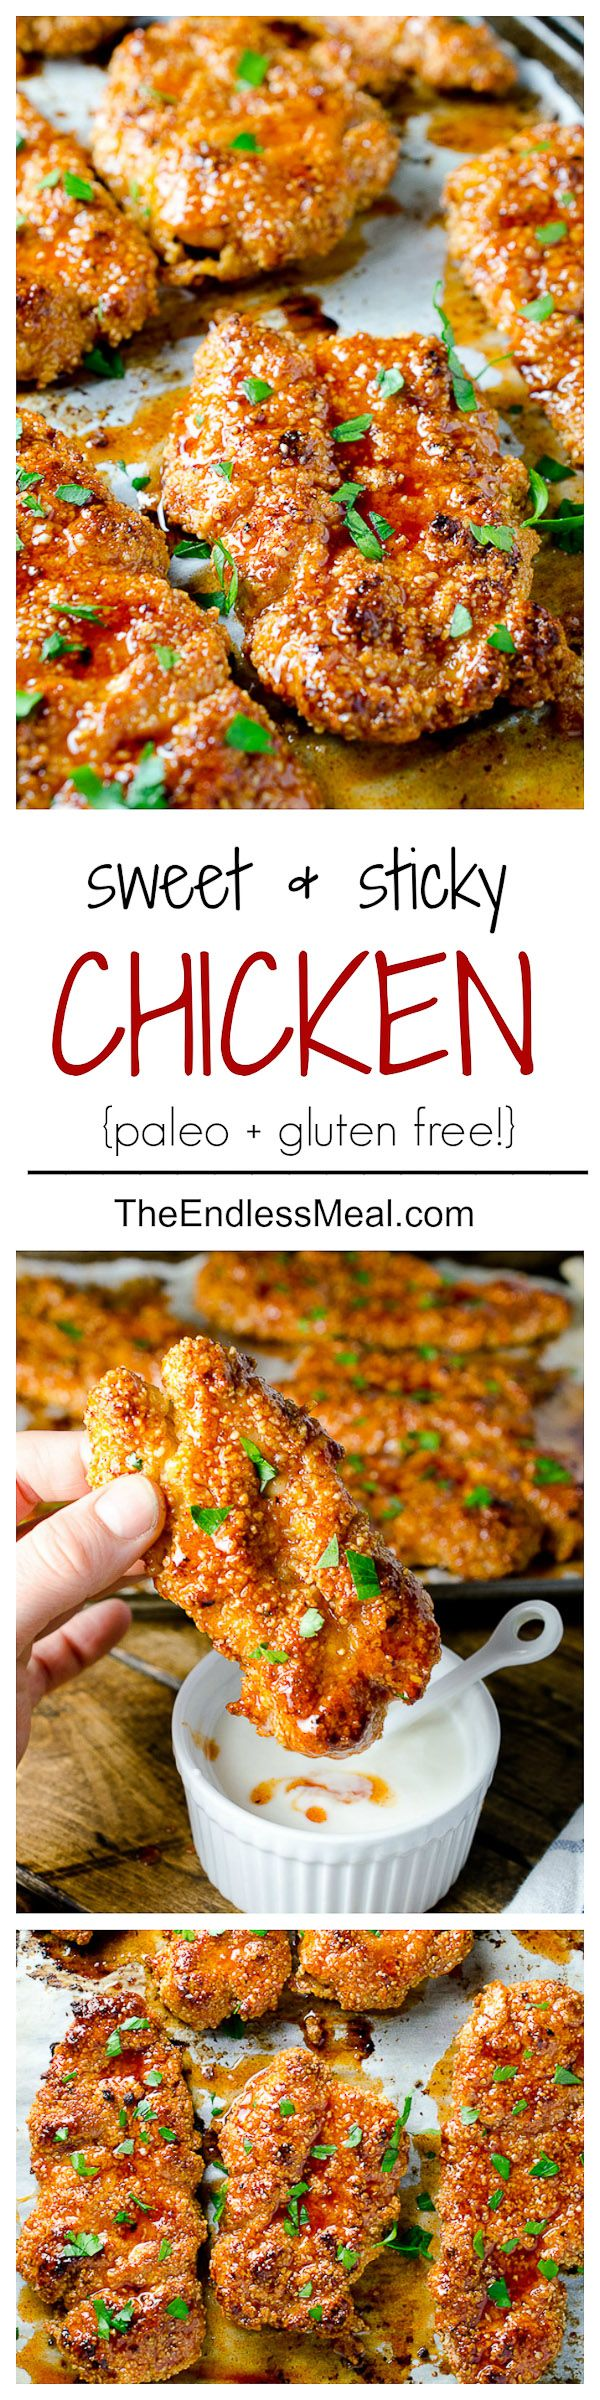 Paleo sweet and spicy chicken bites